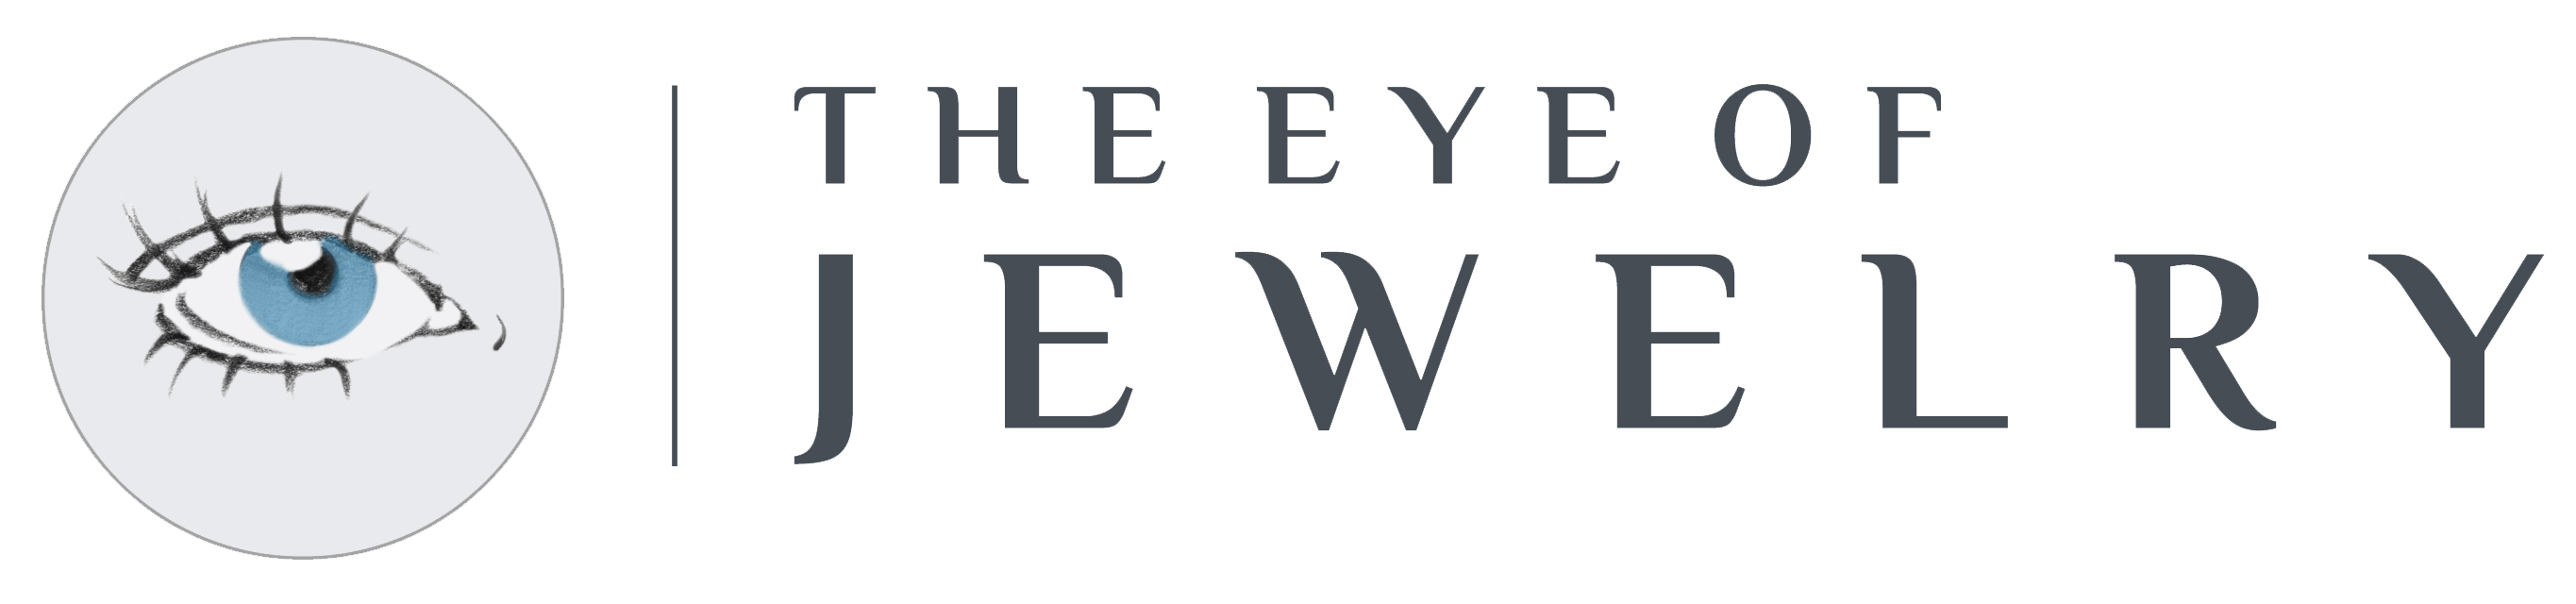 The Eye of Jewelry